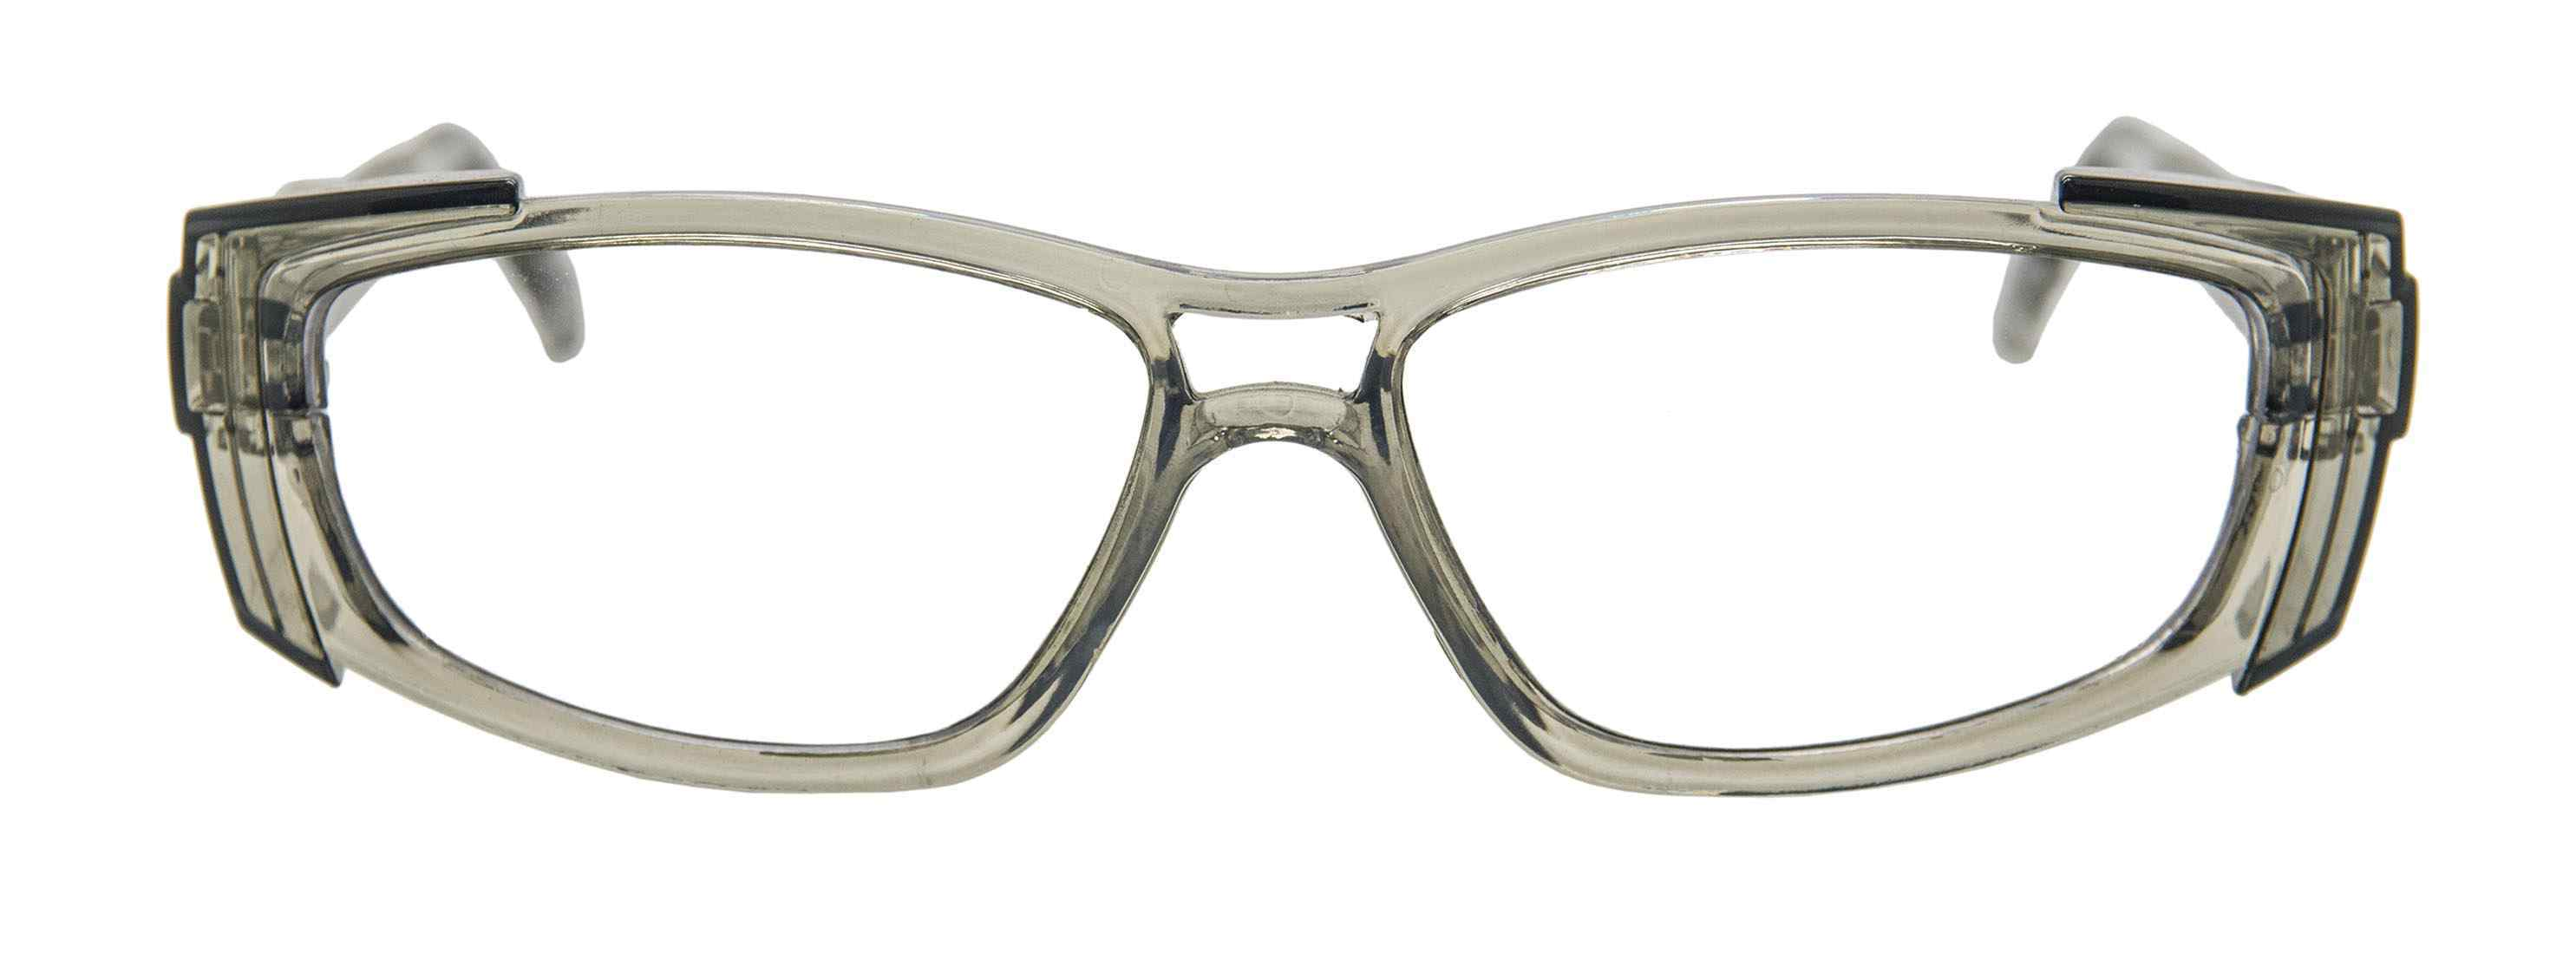 WorkSafe spectacles: Safety Glasses Metis 01 2970x1100